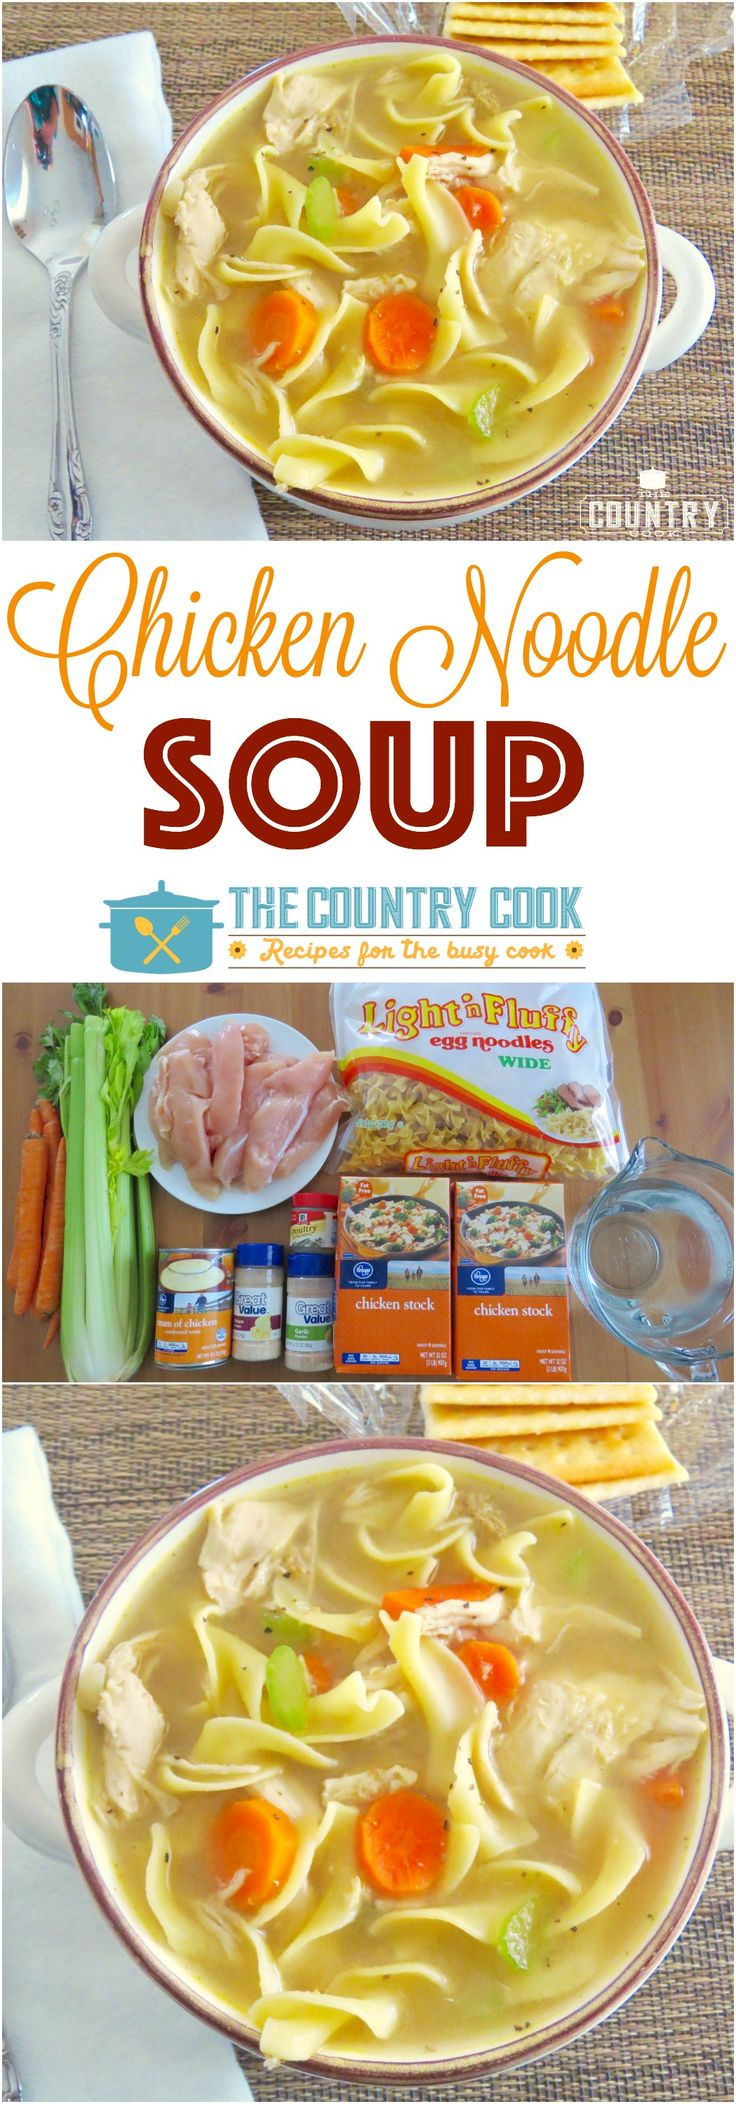 Easy One-Pot Chicken Noodle Soup recipe from The Country Cook